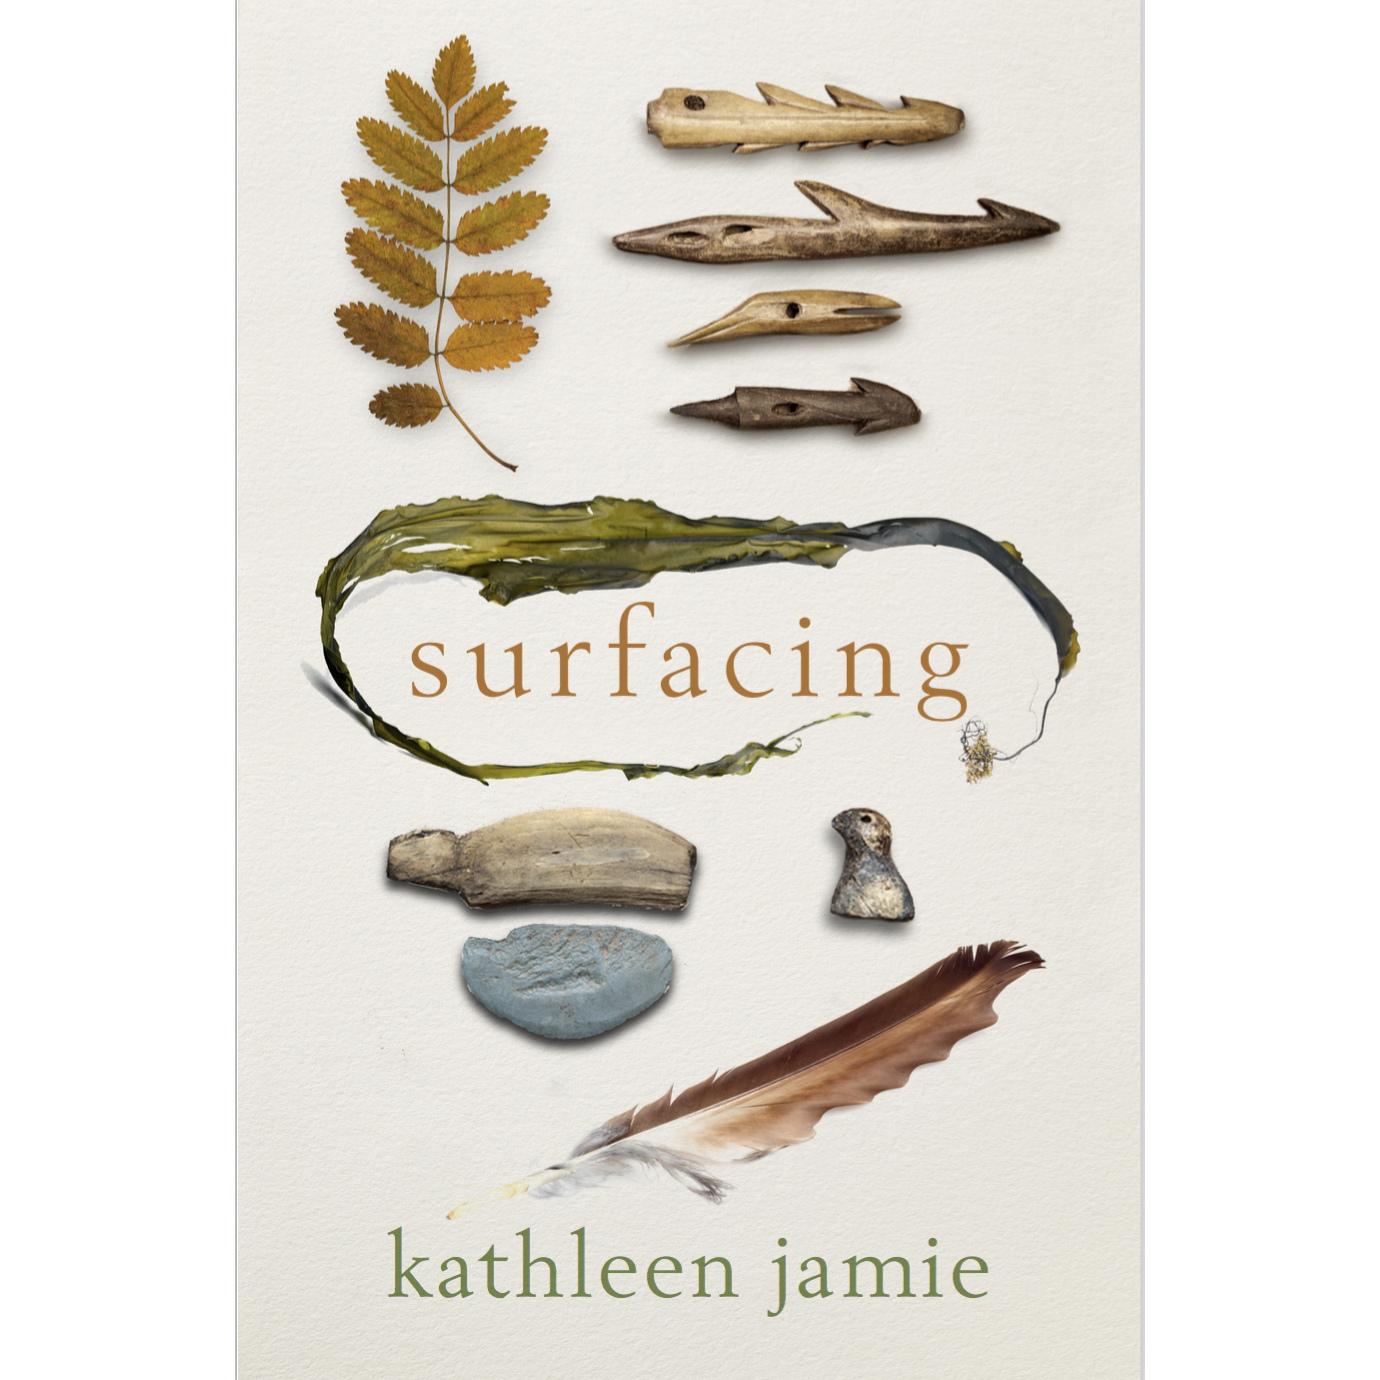 Surfacing by Kathleen Jamie